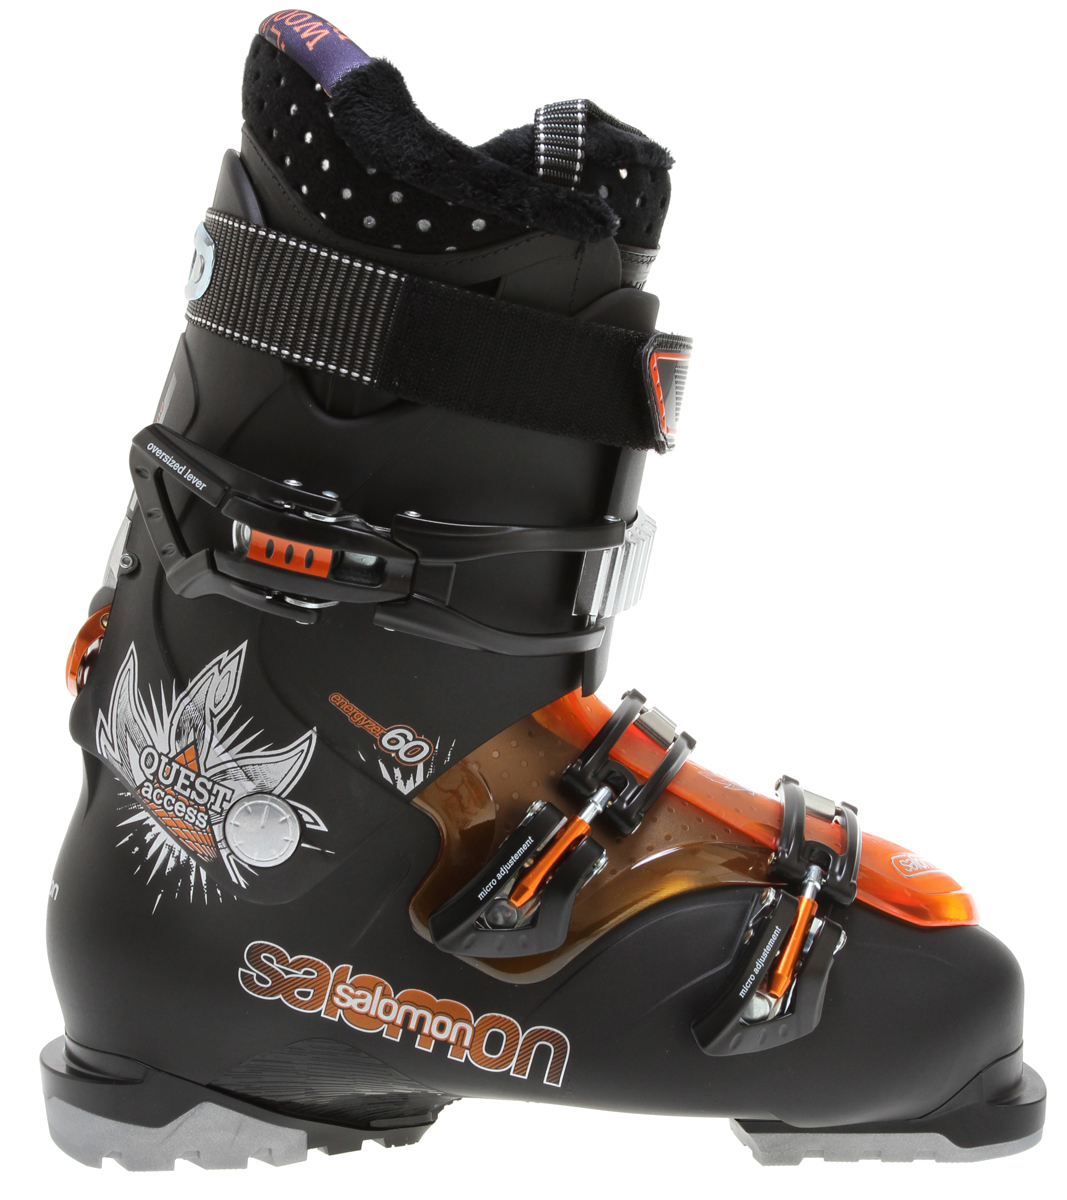 Ski Light weight, convenient all-mountain boot with a unique magnesium Backbone system to combine easy walking and great skiing performance.Key Features of the Salomon Quest Access 60 Ski Boots: Bi-material PP lower shell Bi-material PP upper cuff Easy step in overlap Spaceframe Heel and toe removable din pads Backbone release Boot board My Custom Fit Comfort Woolmetal 2 micro alu + 1 vario buckles - $262.95